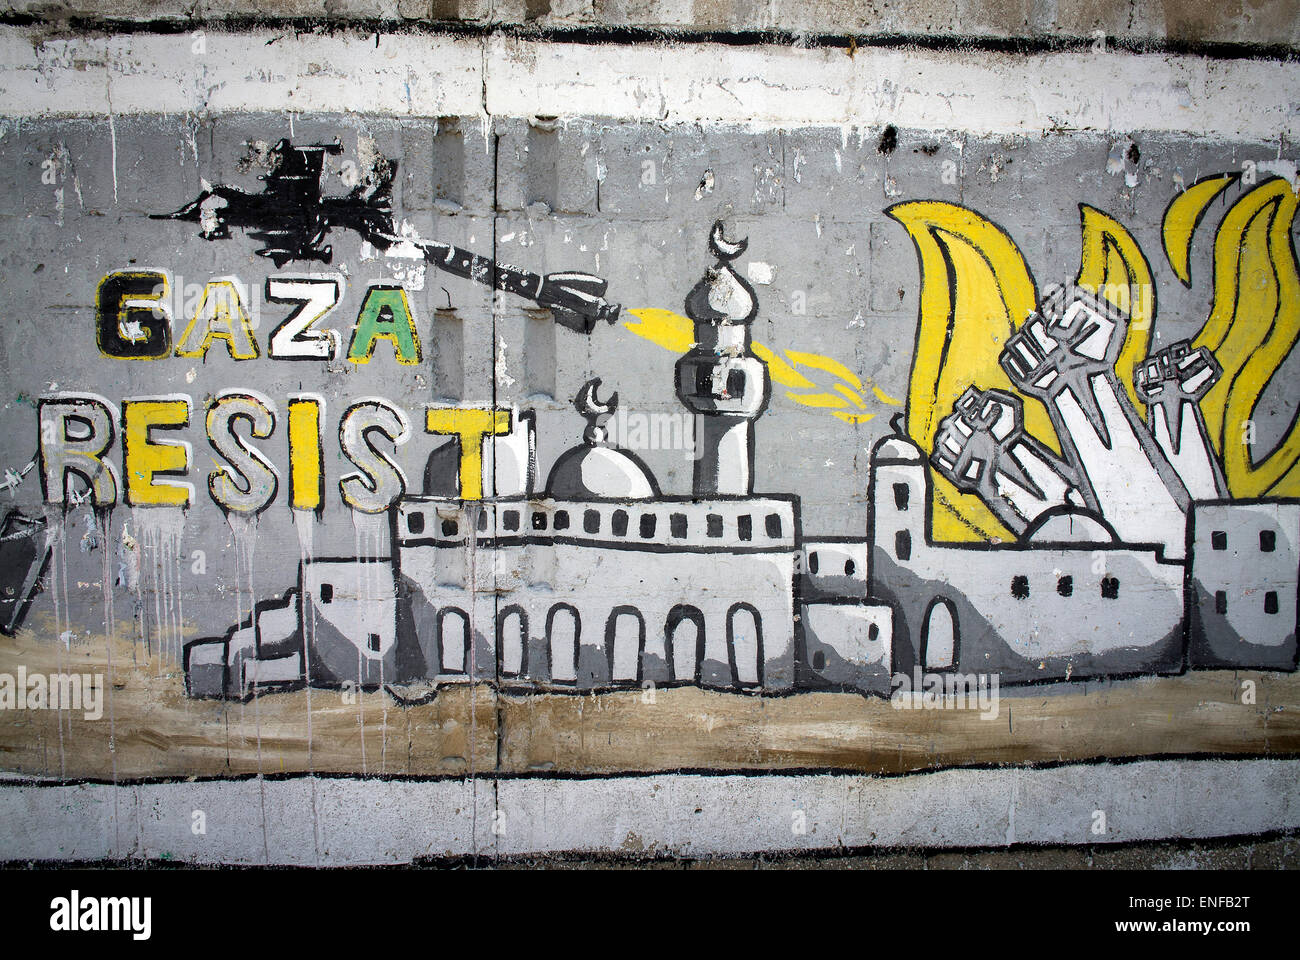 Graffiti in Gaza City - Stock Image